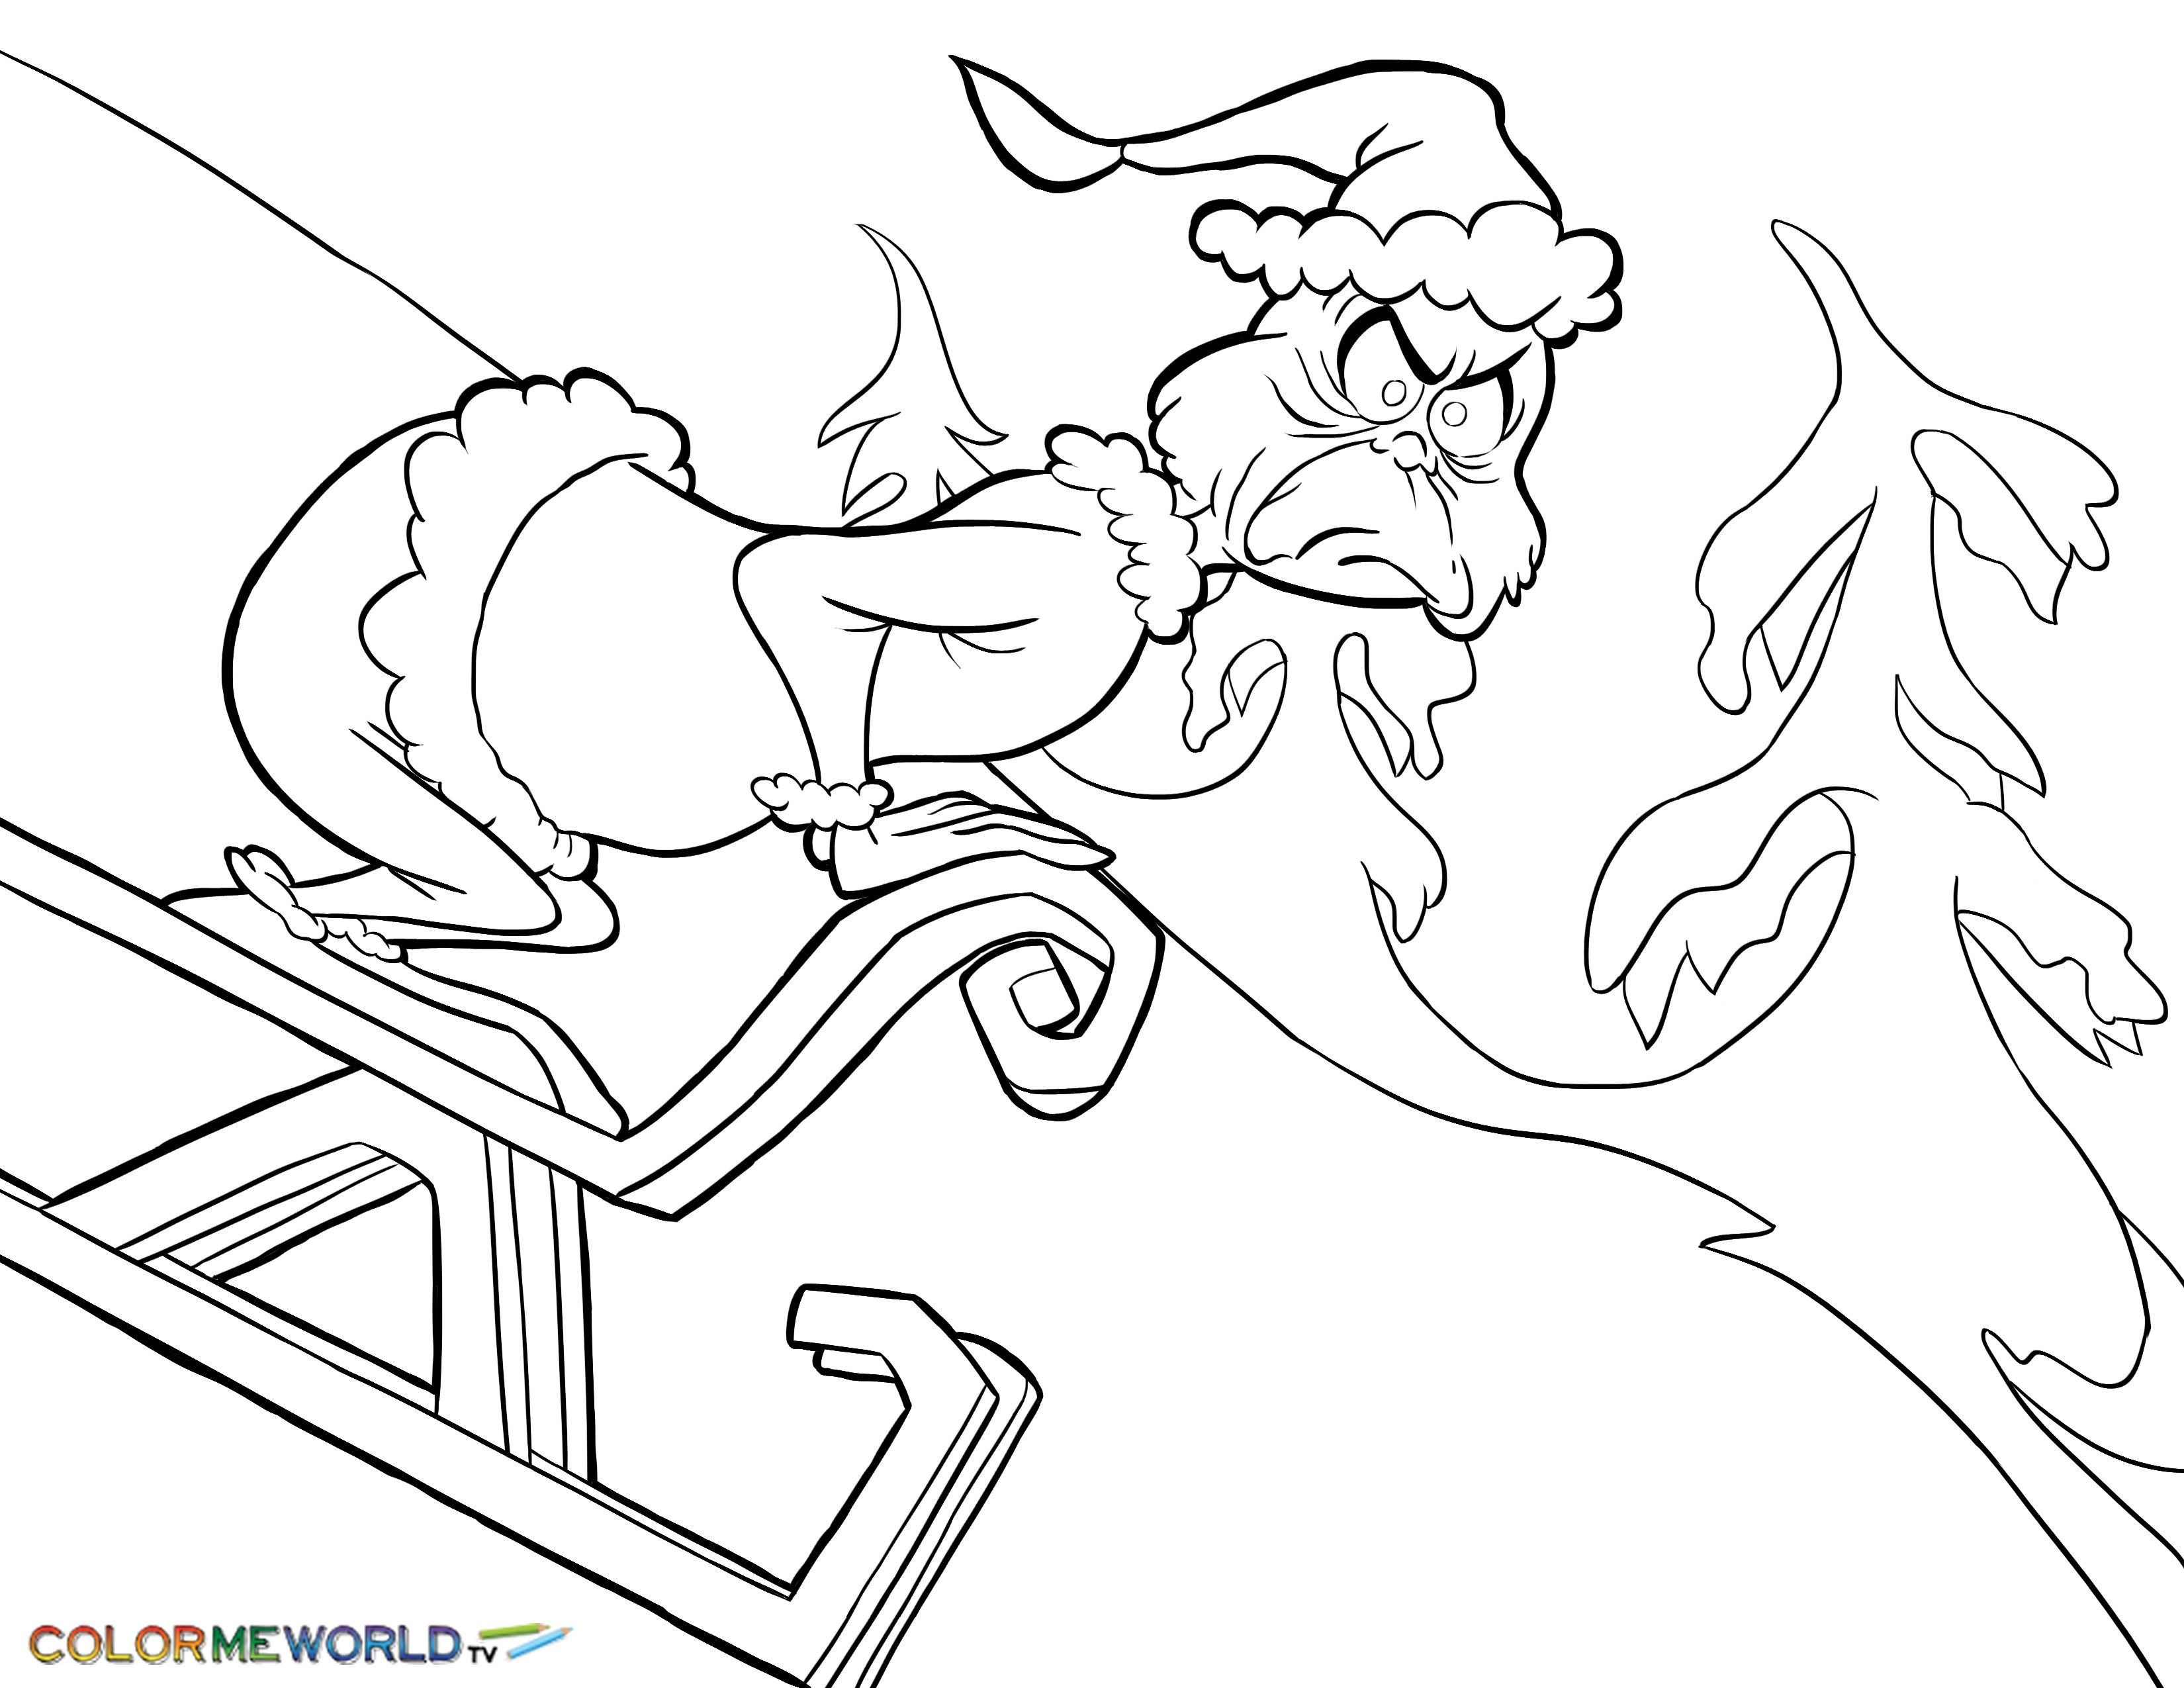 Grinch Coloring Pages The Grinch Coloring Pages Free